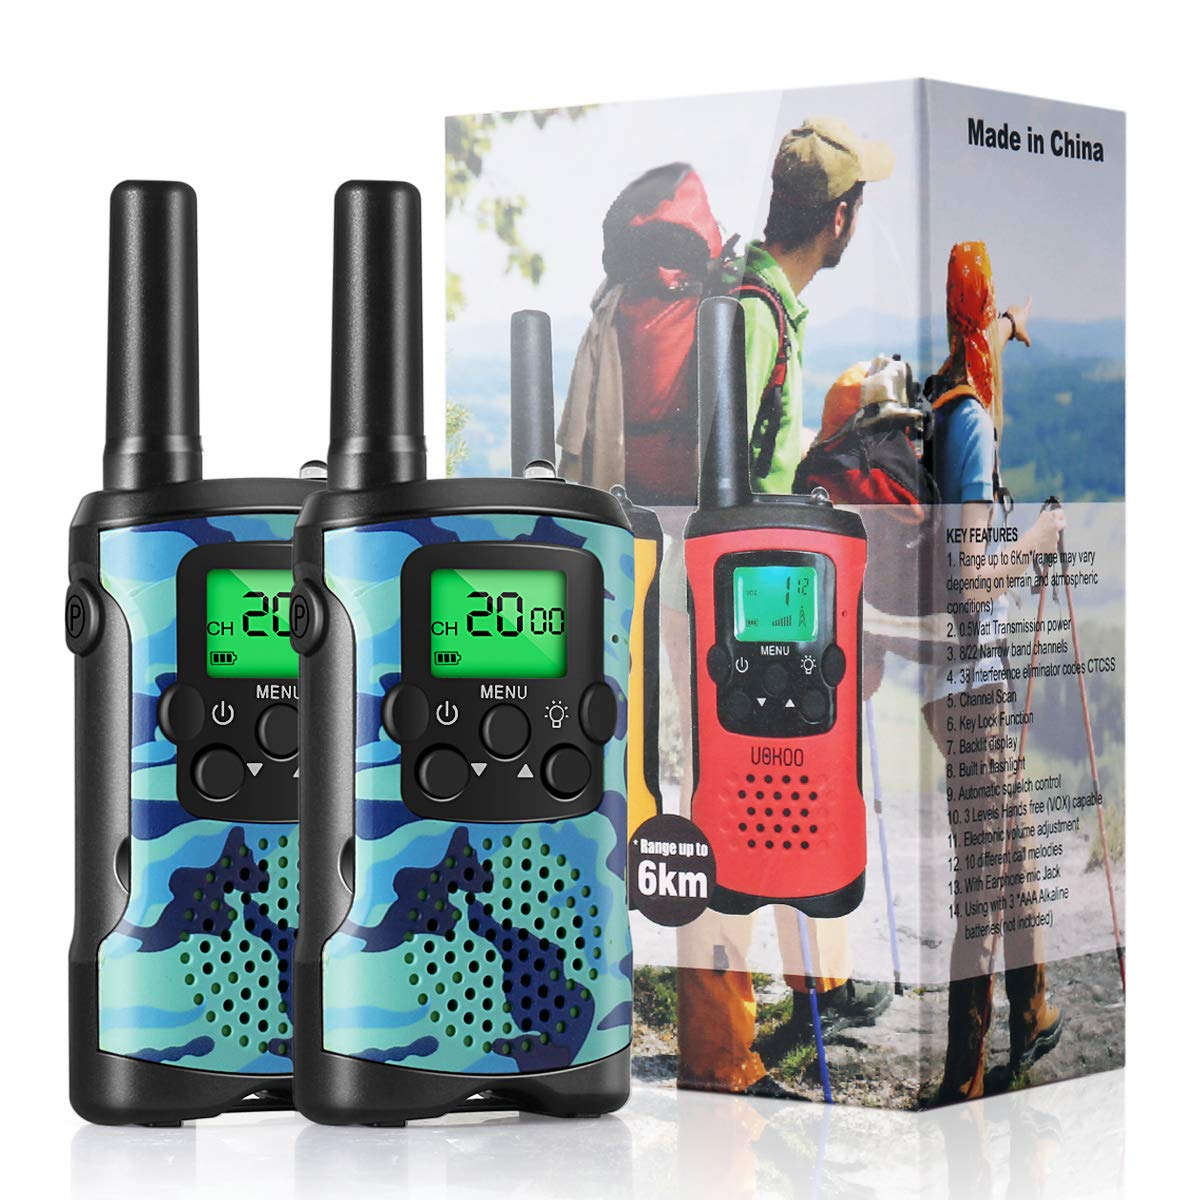 Walkie Talkies for Kids, Cakie 22 Channel FRS/GMRS 2 Way Radio (up to 3.7 Miles) UHF Hand-held Kids Walkie Talkies with Back-lit LCD Screen, Toys for 5 6 7 8+ Old Boys and Girls as Gift(New Blue)